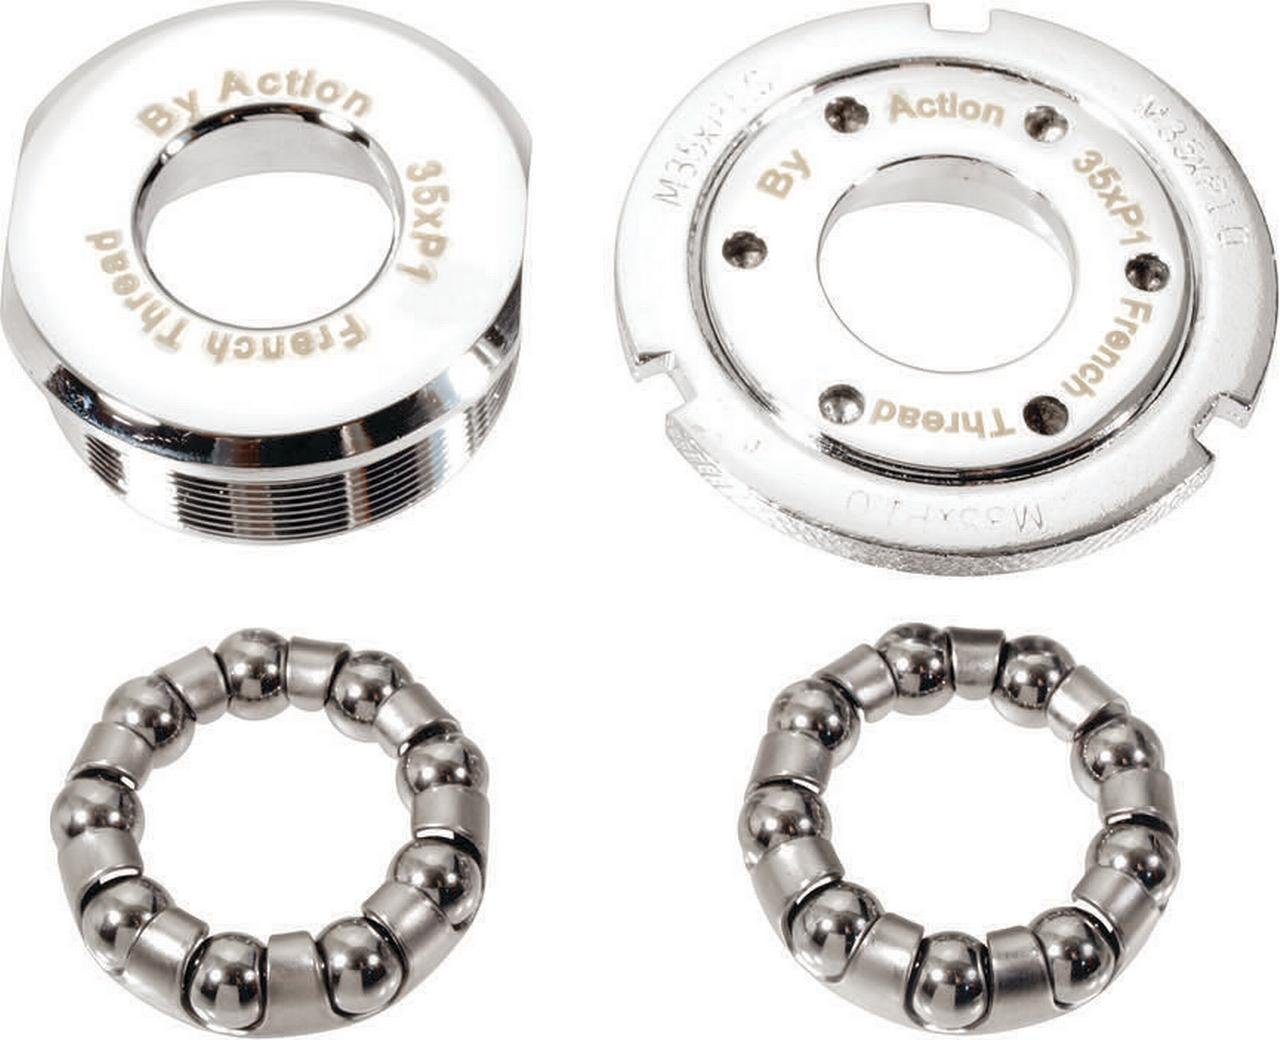 Action Tretlager Cup Set French 35 x 1,0 mm 2 x Rechts W Halterung